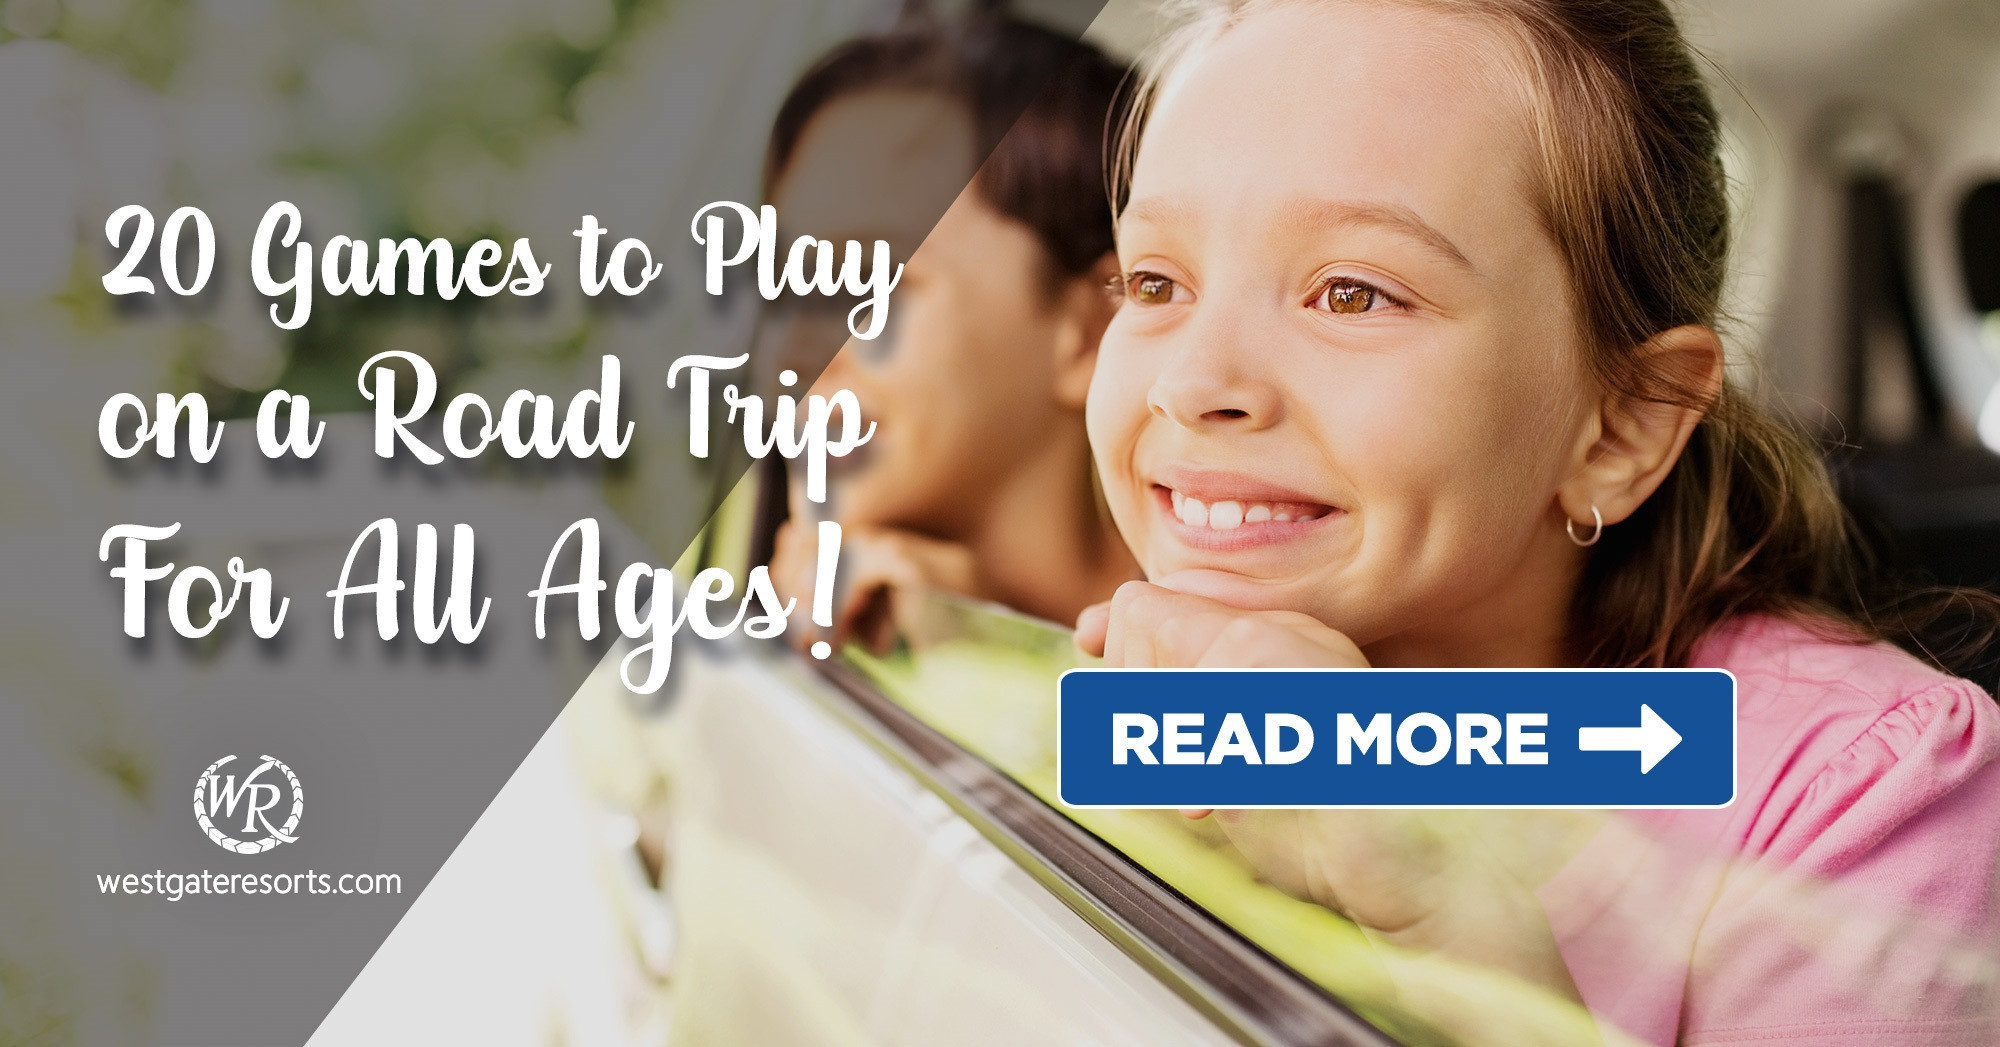 20 Games to Play on a Road Trip For All Ages!